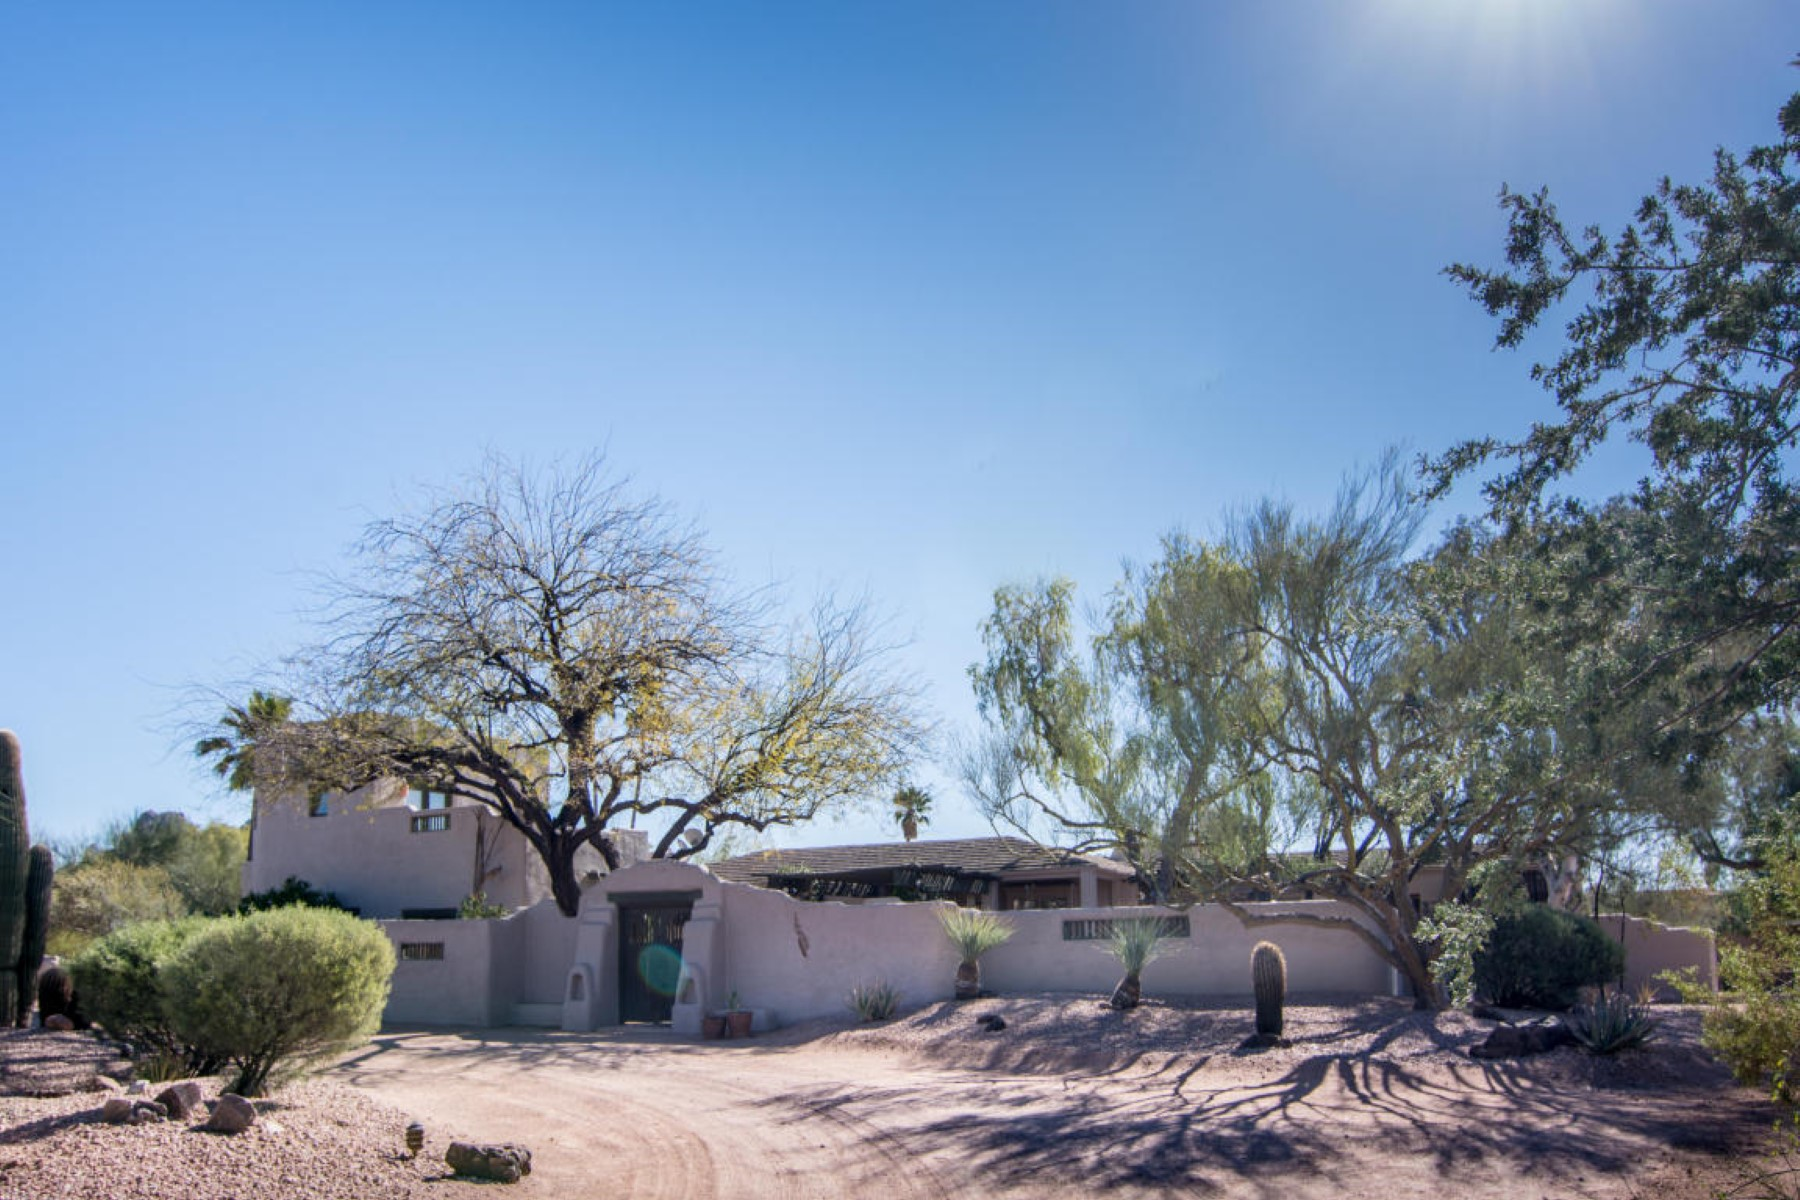 sales property at A unique home is an artistic jewel in desert with soul